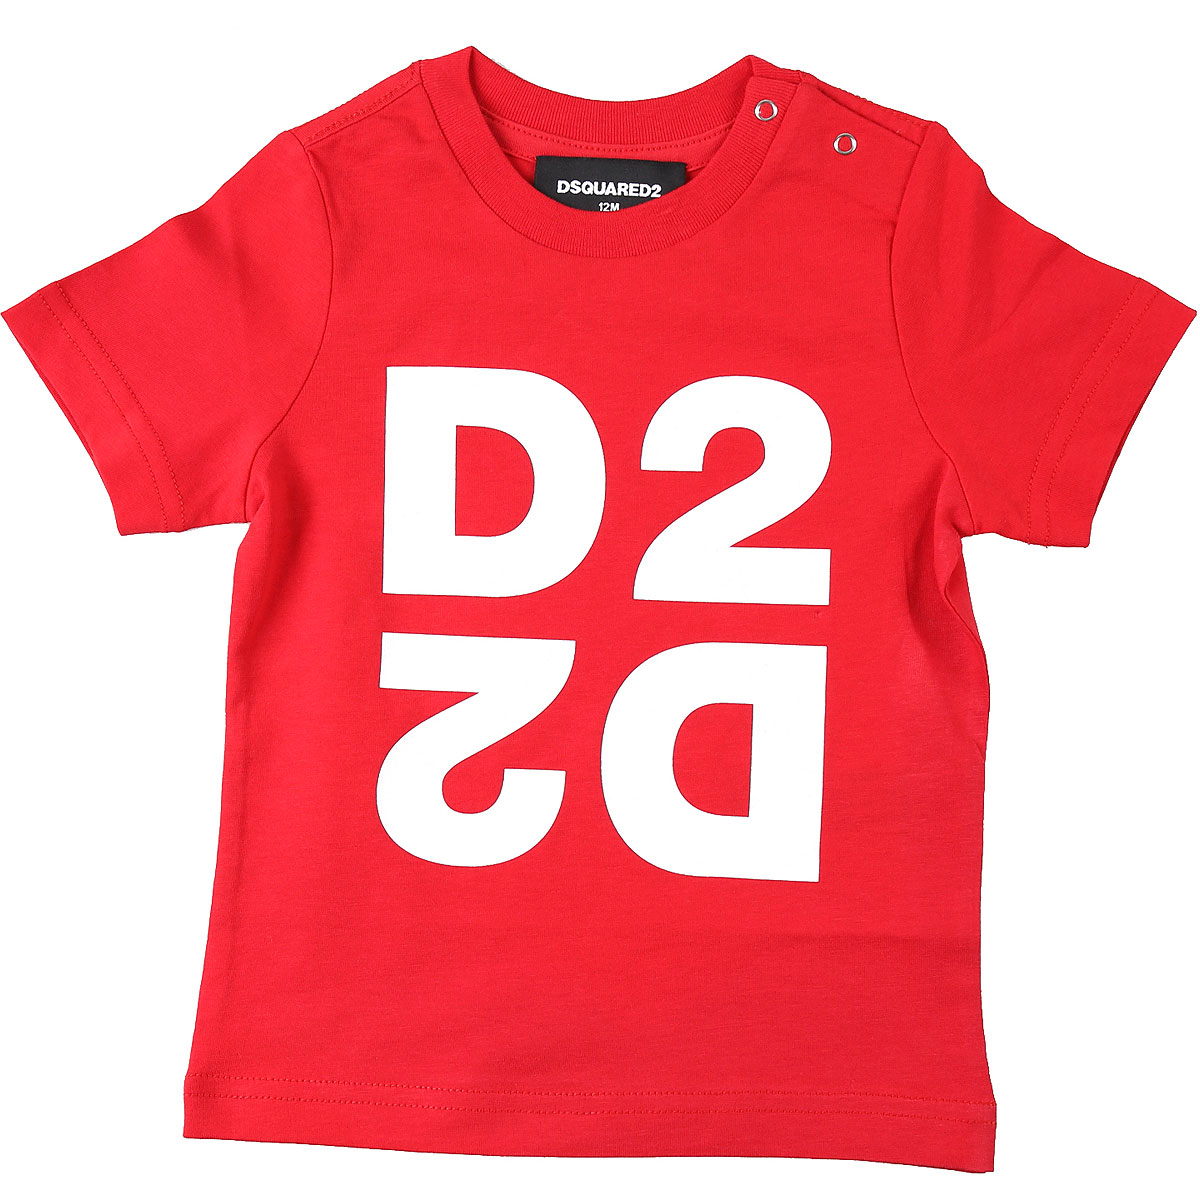 Dsquared2 Baby T-Shirt for Boys On Sale, Red, Cotton, 2019, 18M 9M